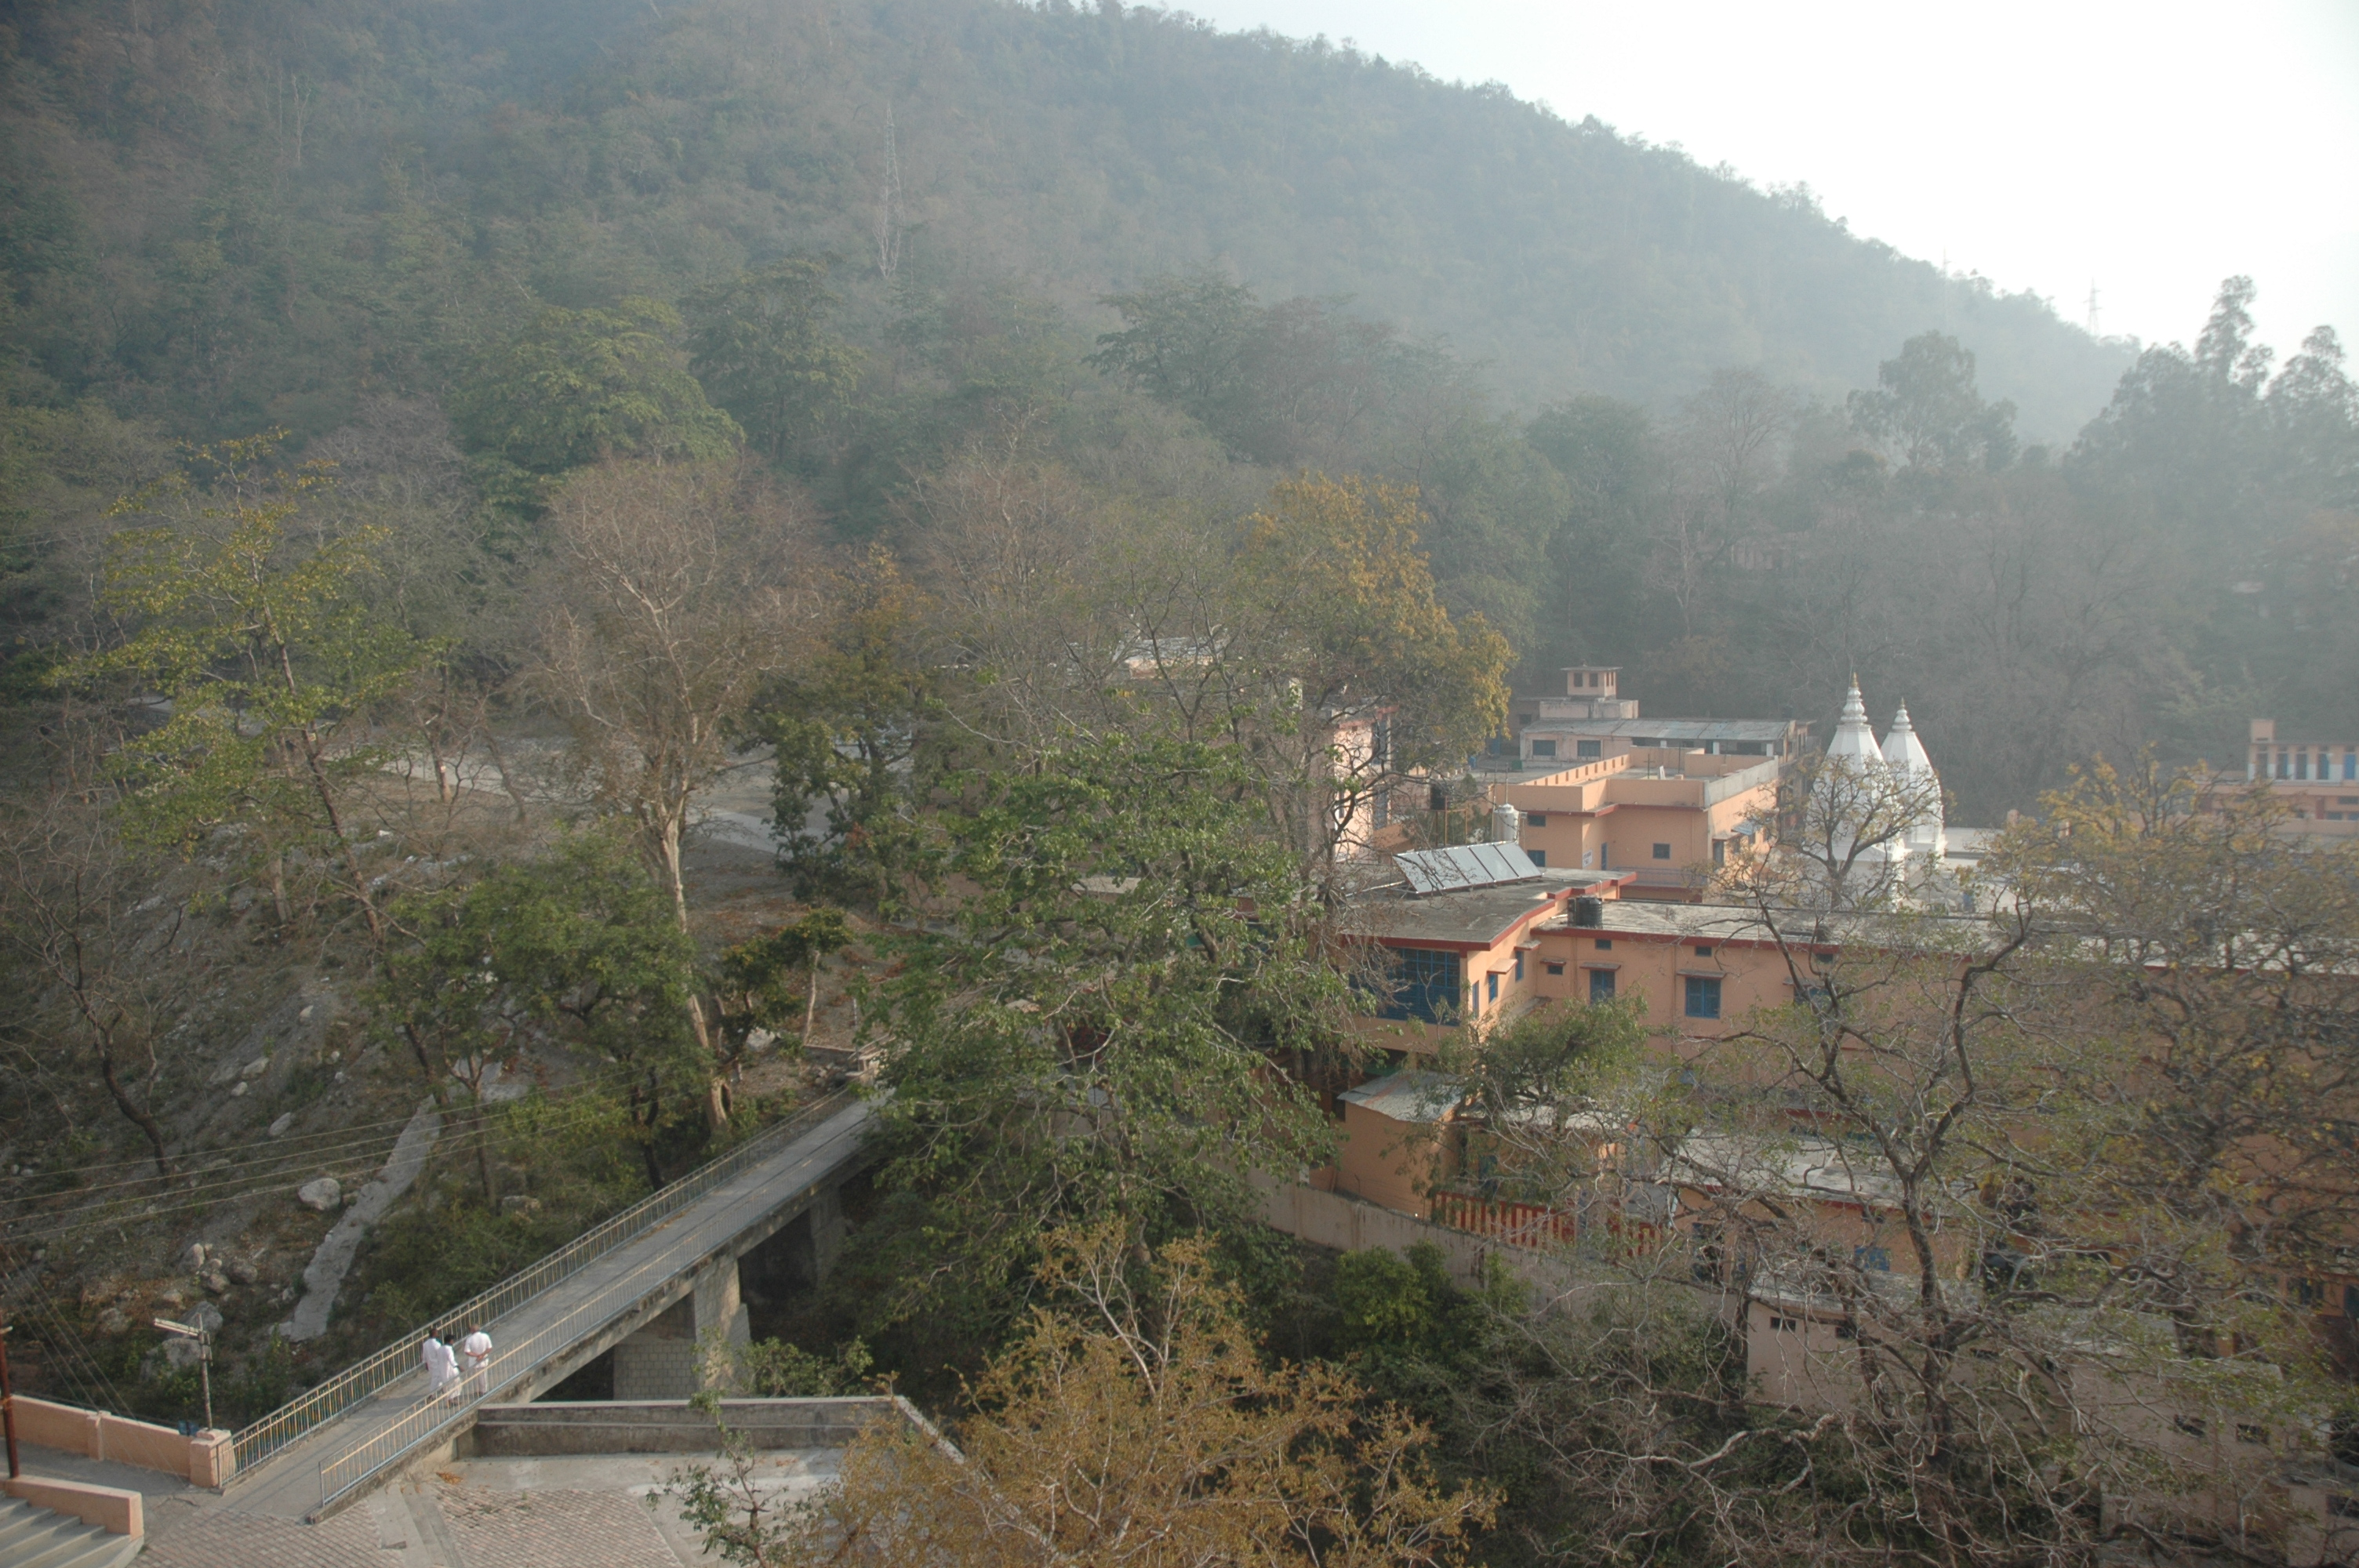 Ashram View from Auditorium